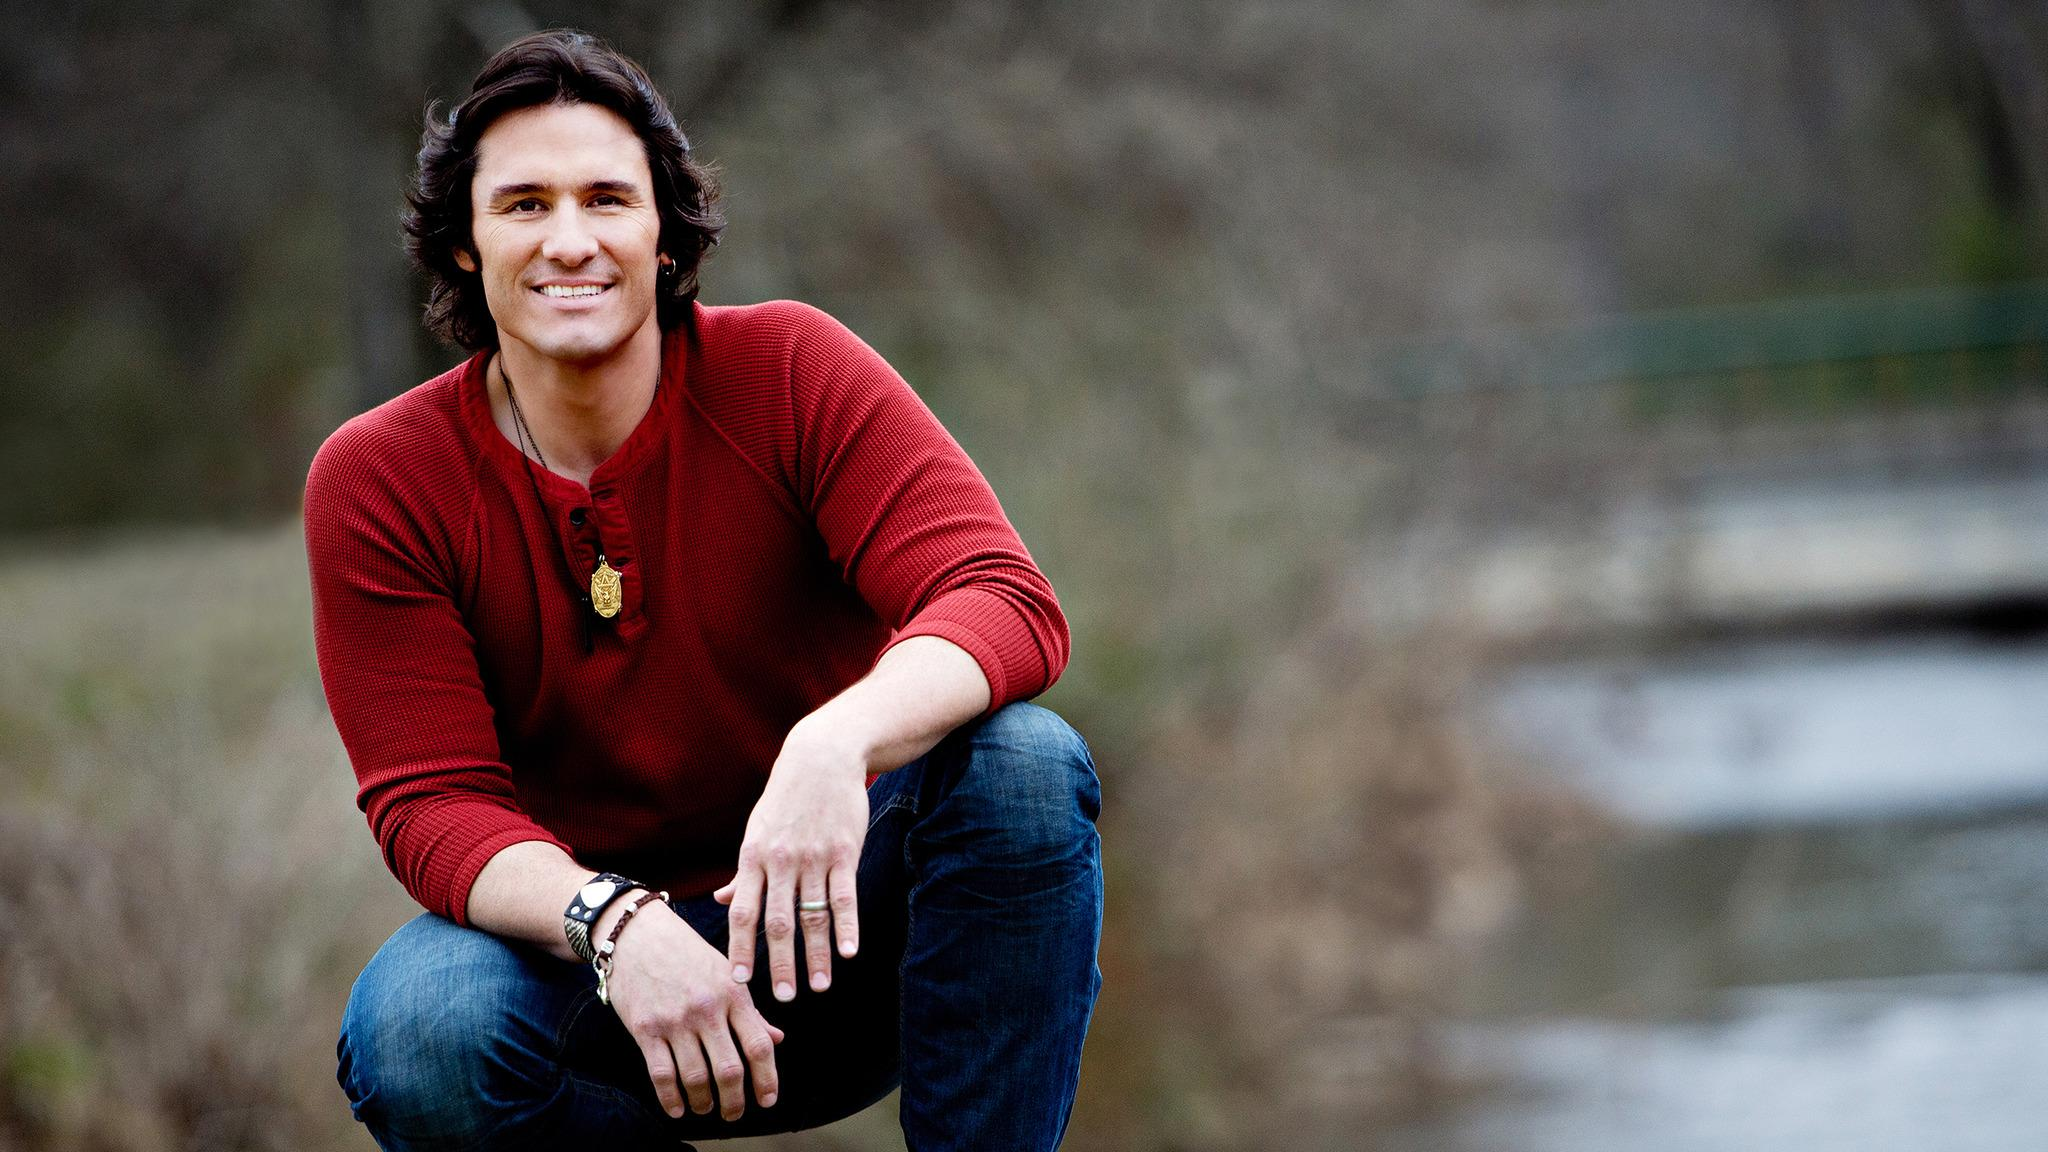 Joe Nichols at CFSB Center